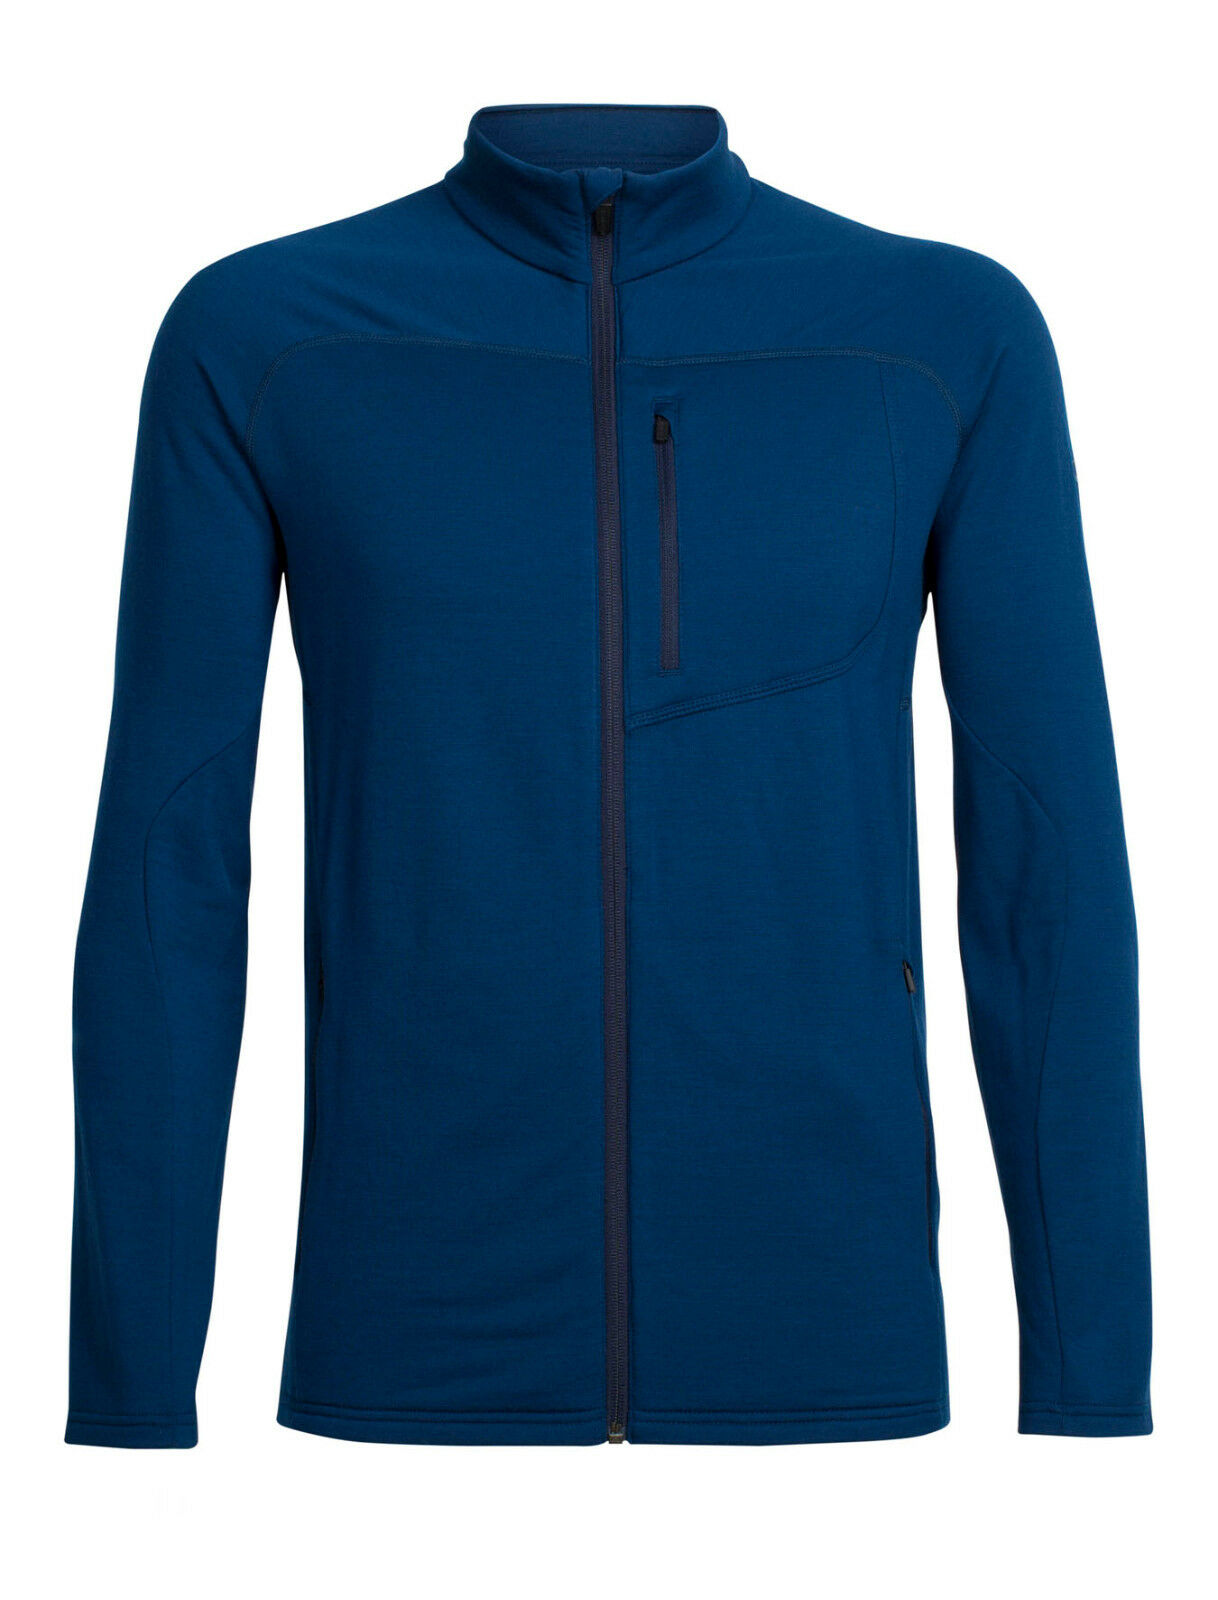 Icebreakerrealfleece MT Elliot Long Sleeve Zip Uomo  200 gm²